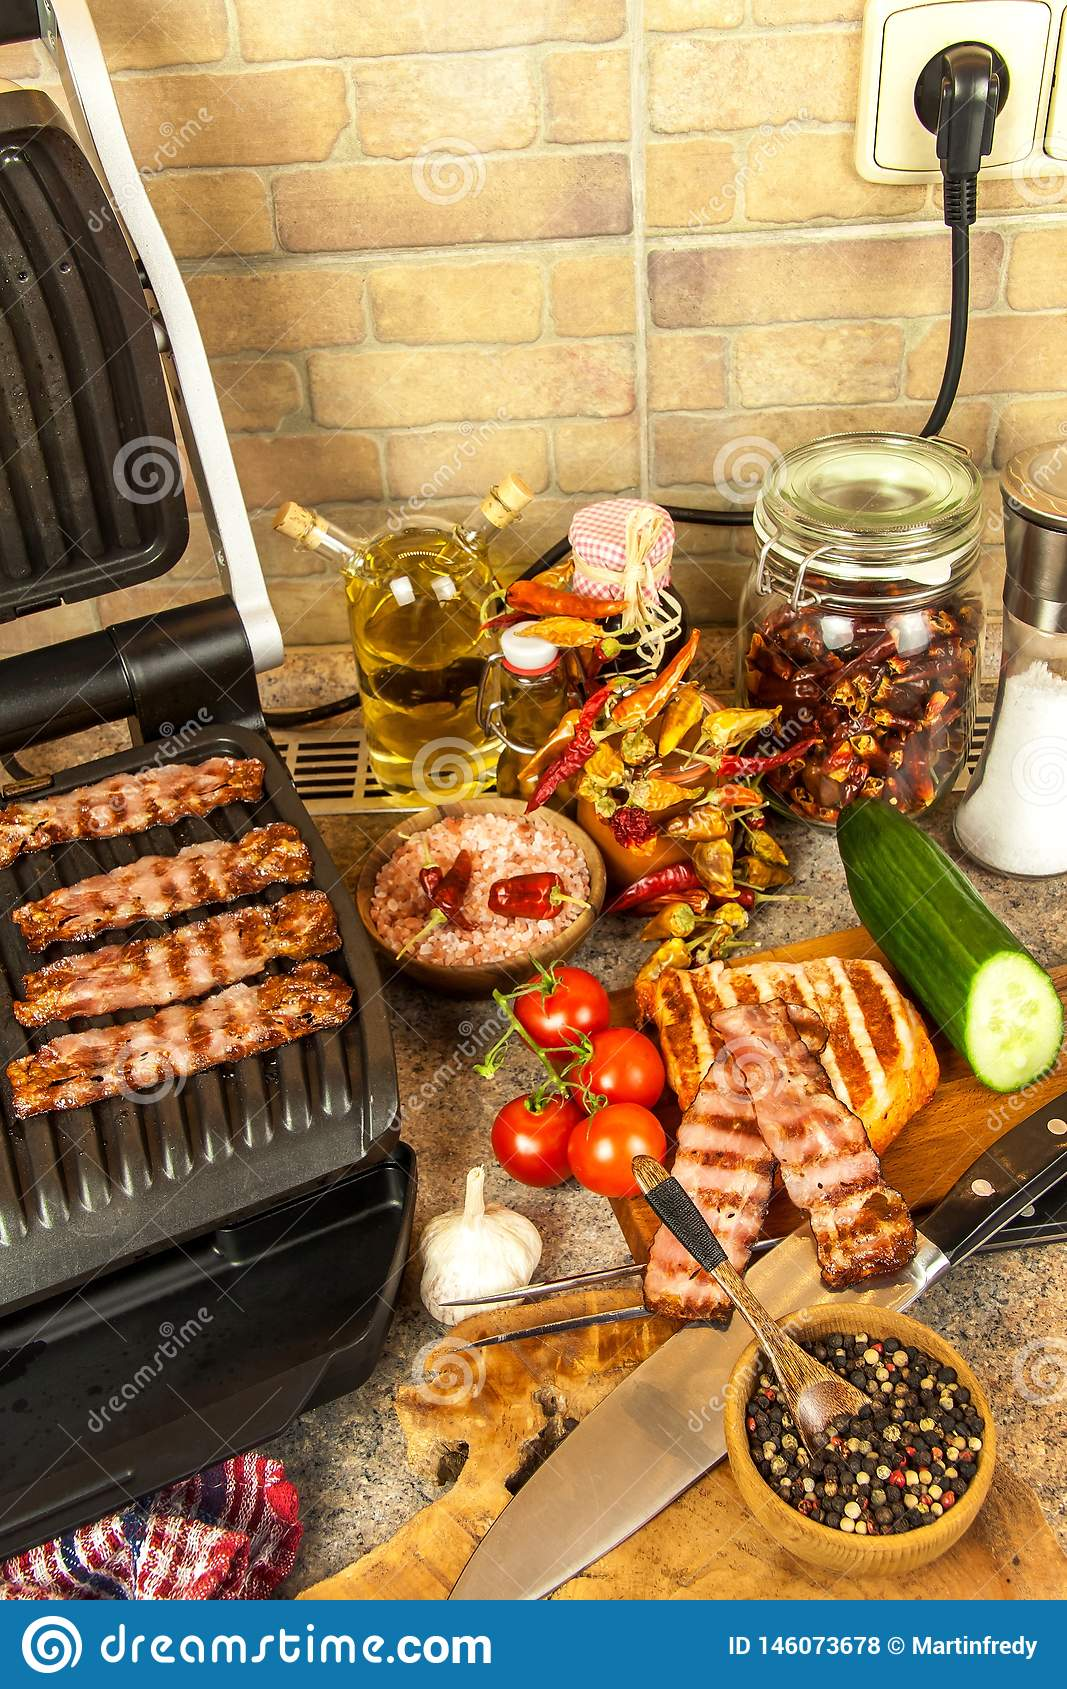 Grill Steak On An Electric Stove Pork Neck Fried On Small Electric Grill Home Cooking Healthy Barbecue Catering To Friends Stock Photo Image Of Heat Chicken 146073678